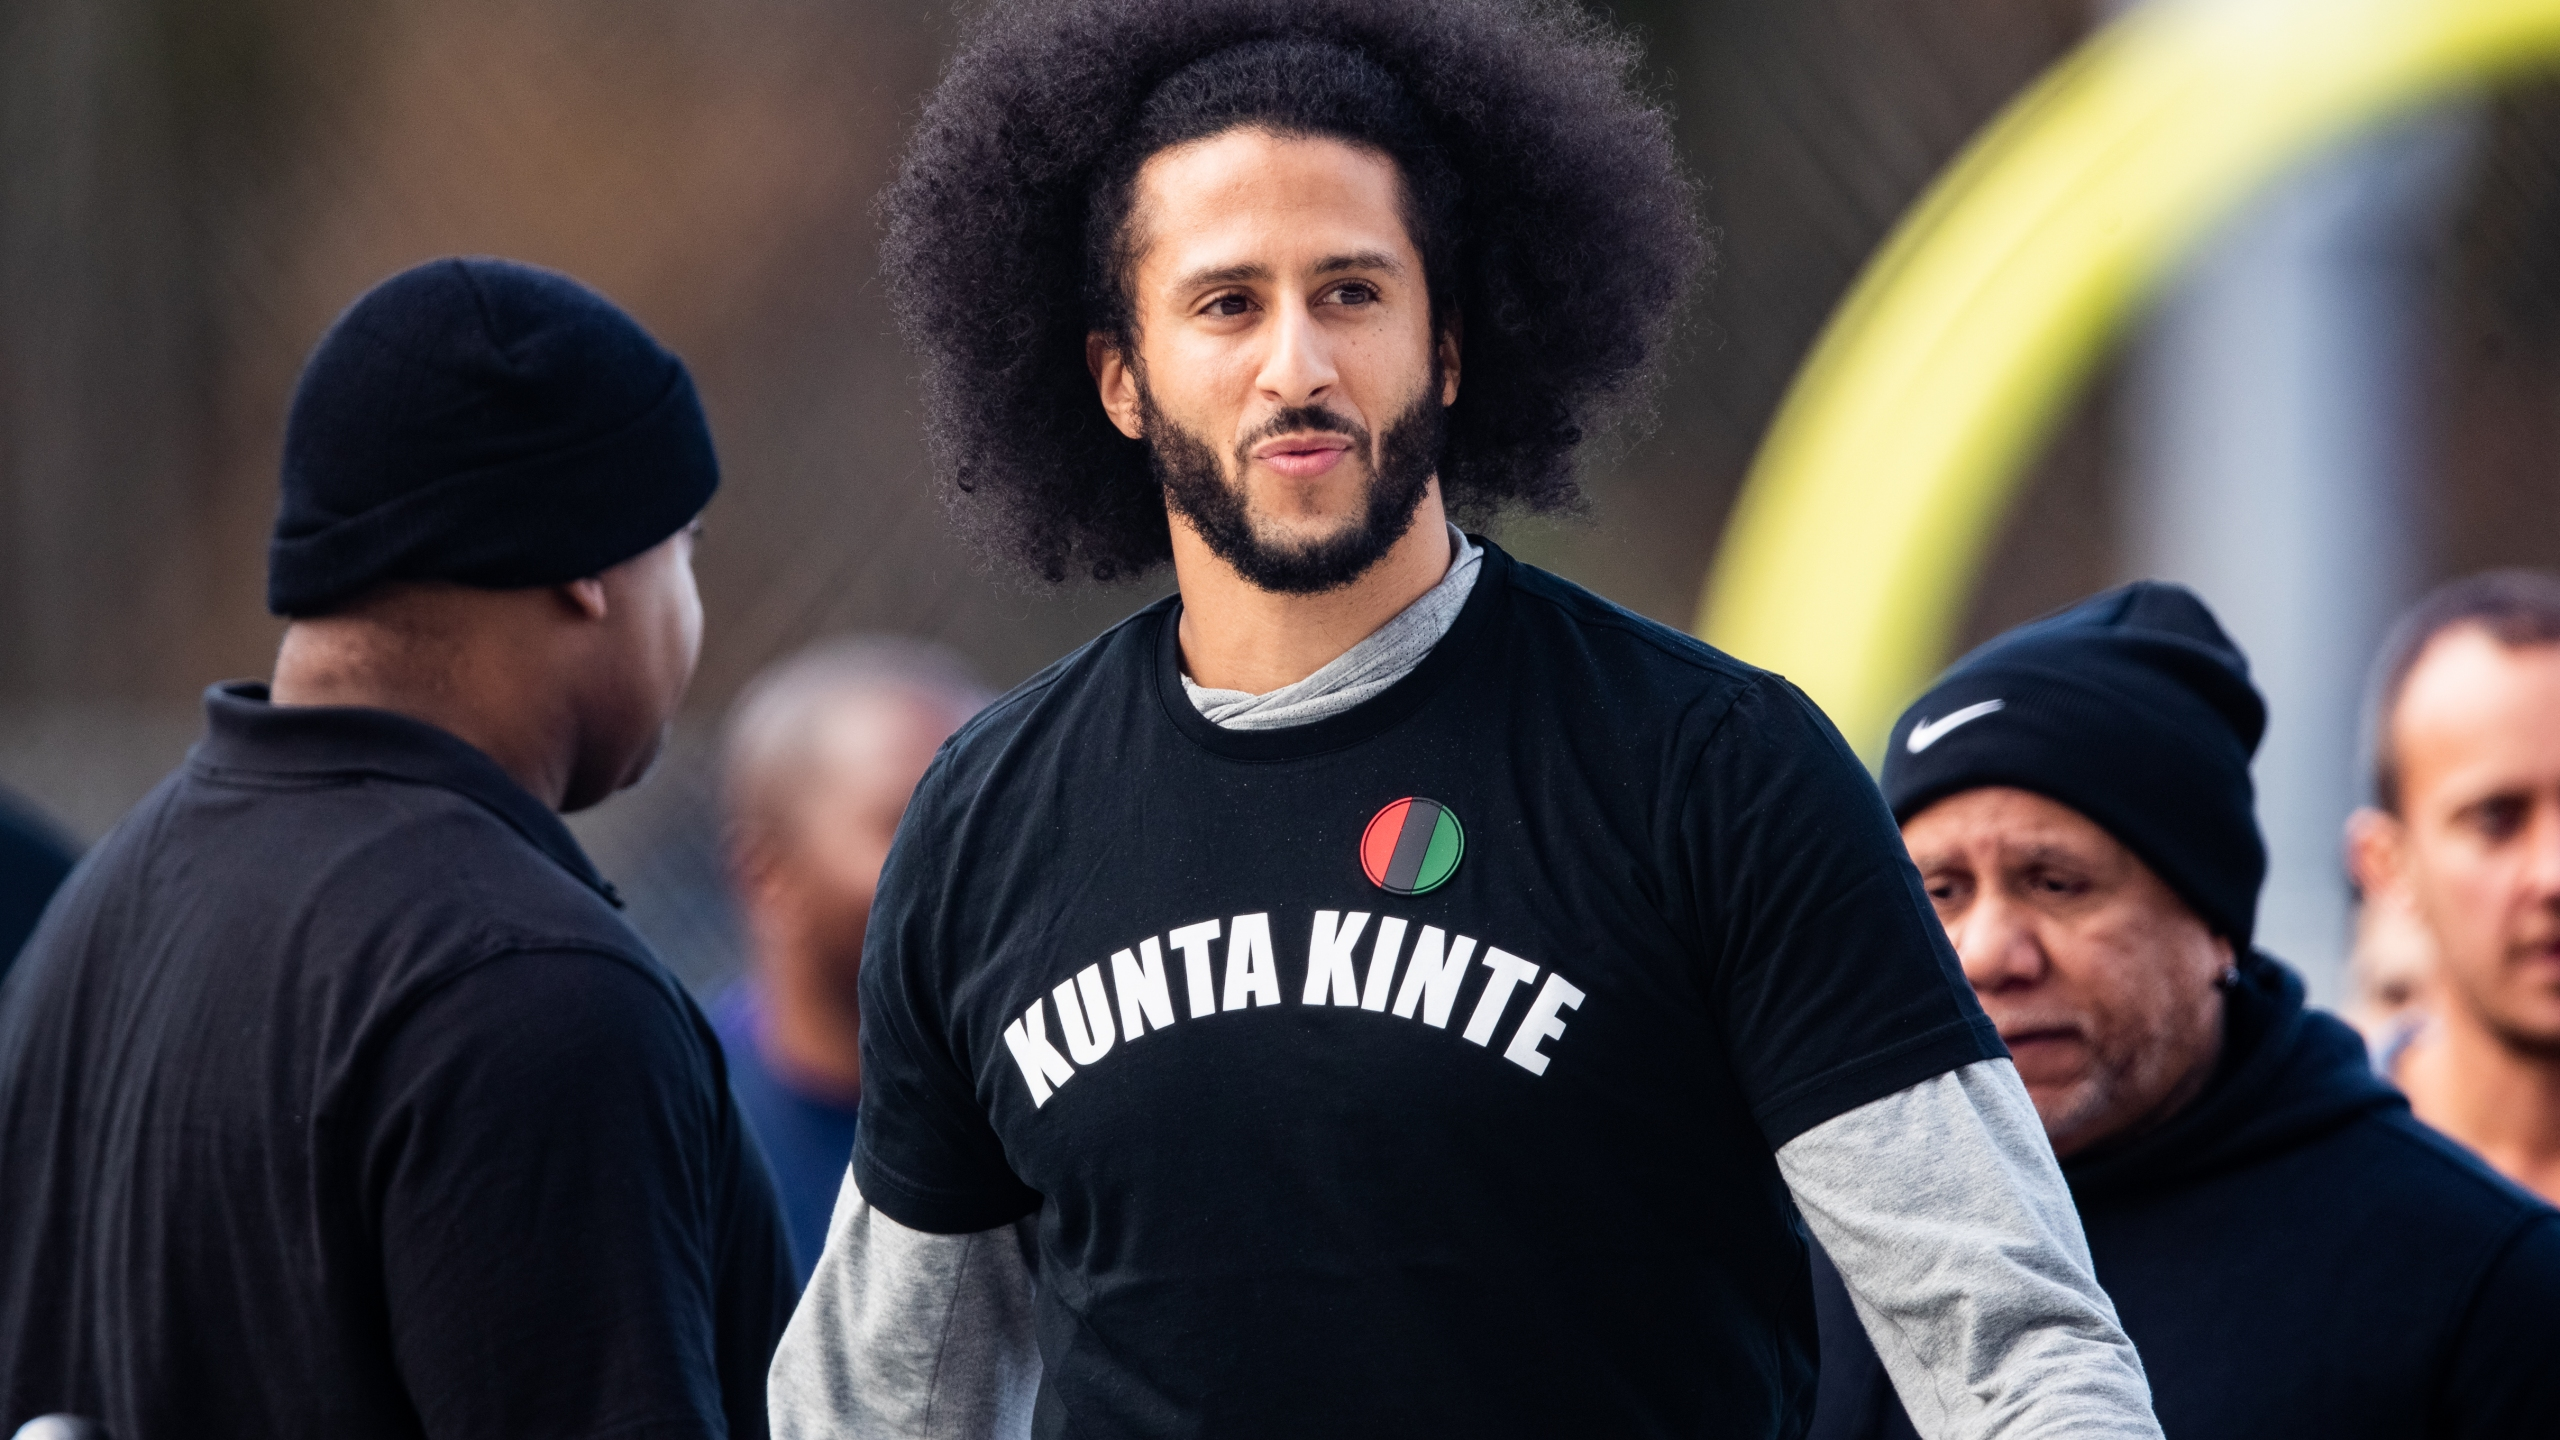 Colin Kaepernick looks on during an NFL workout in Riverdale, Georgia, on Nov. 16, 2019. (Carmen Mandato / Getty Images)